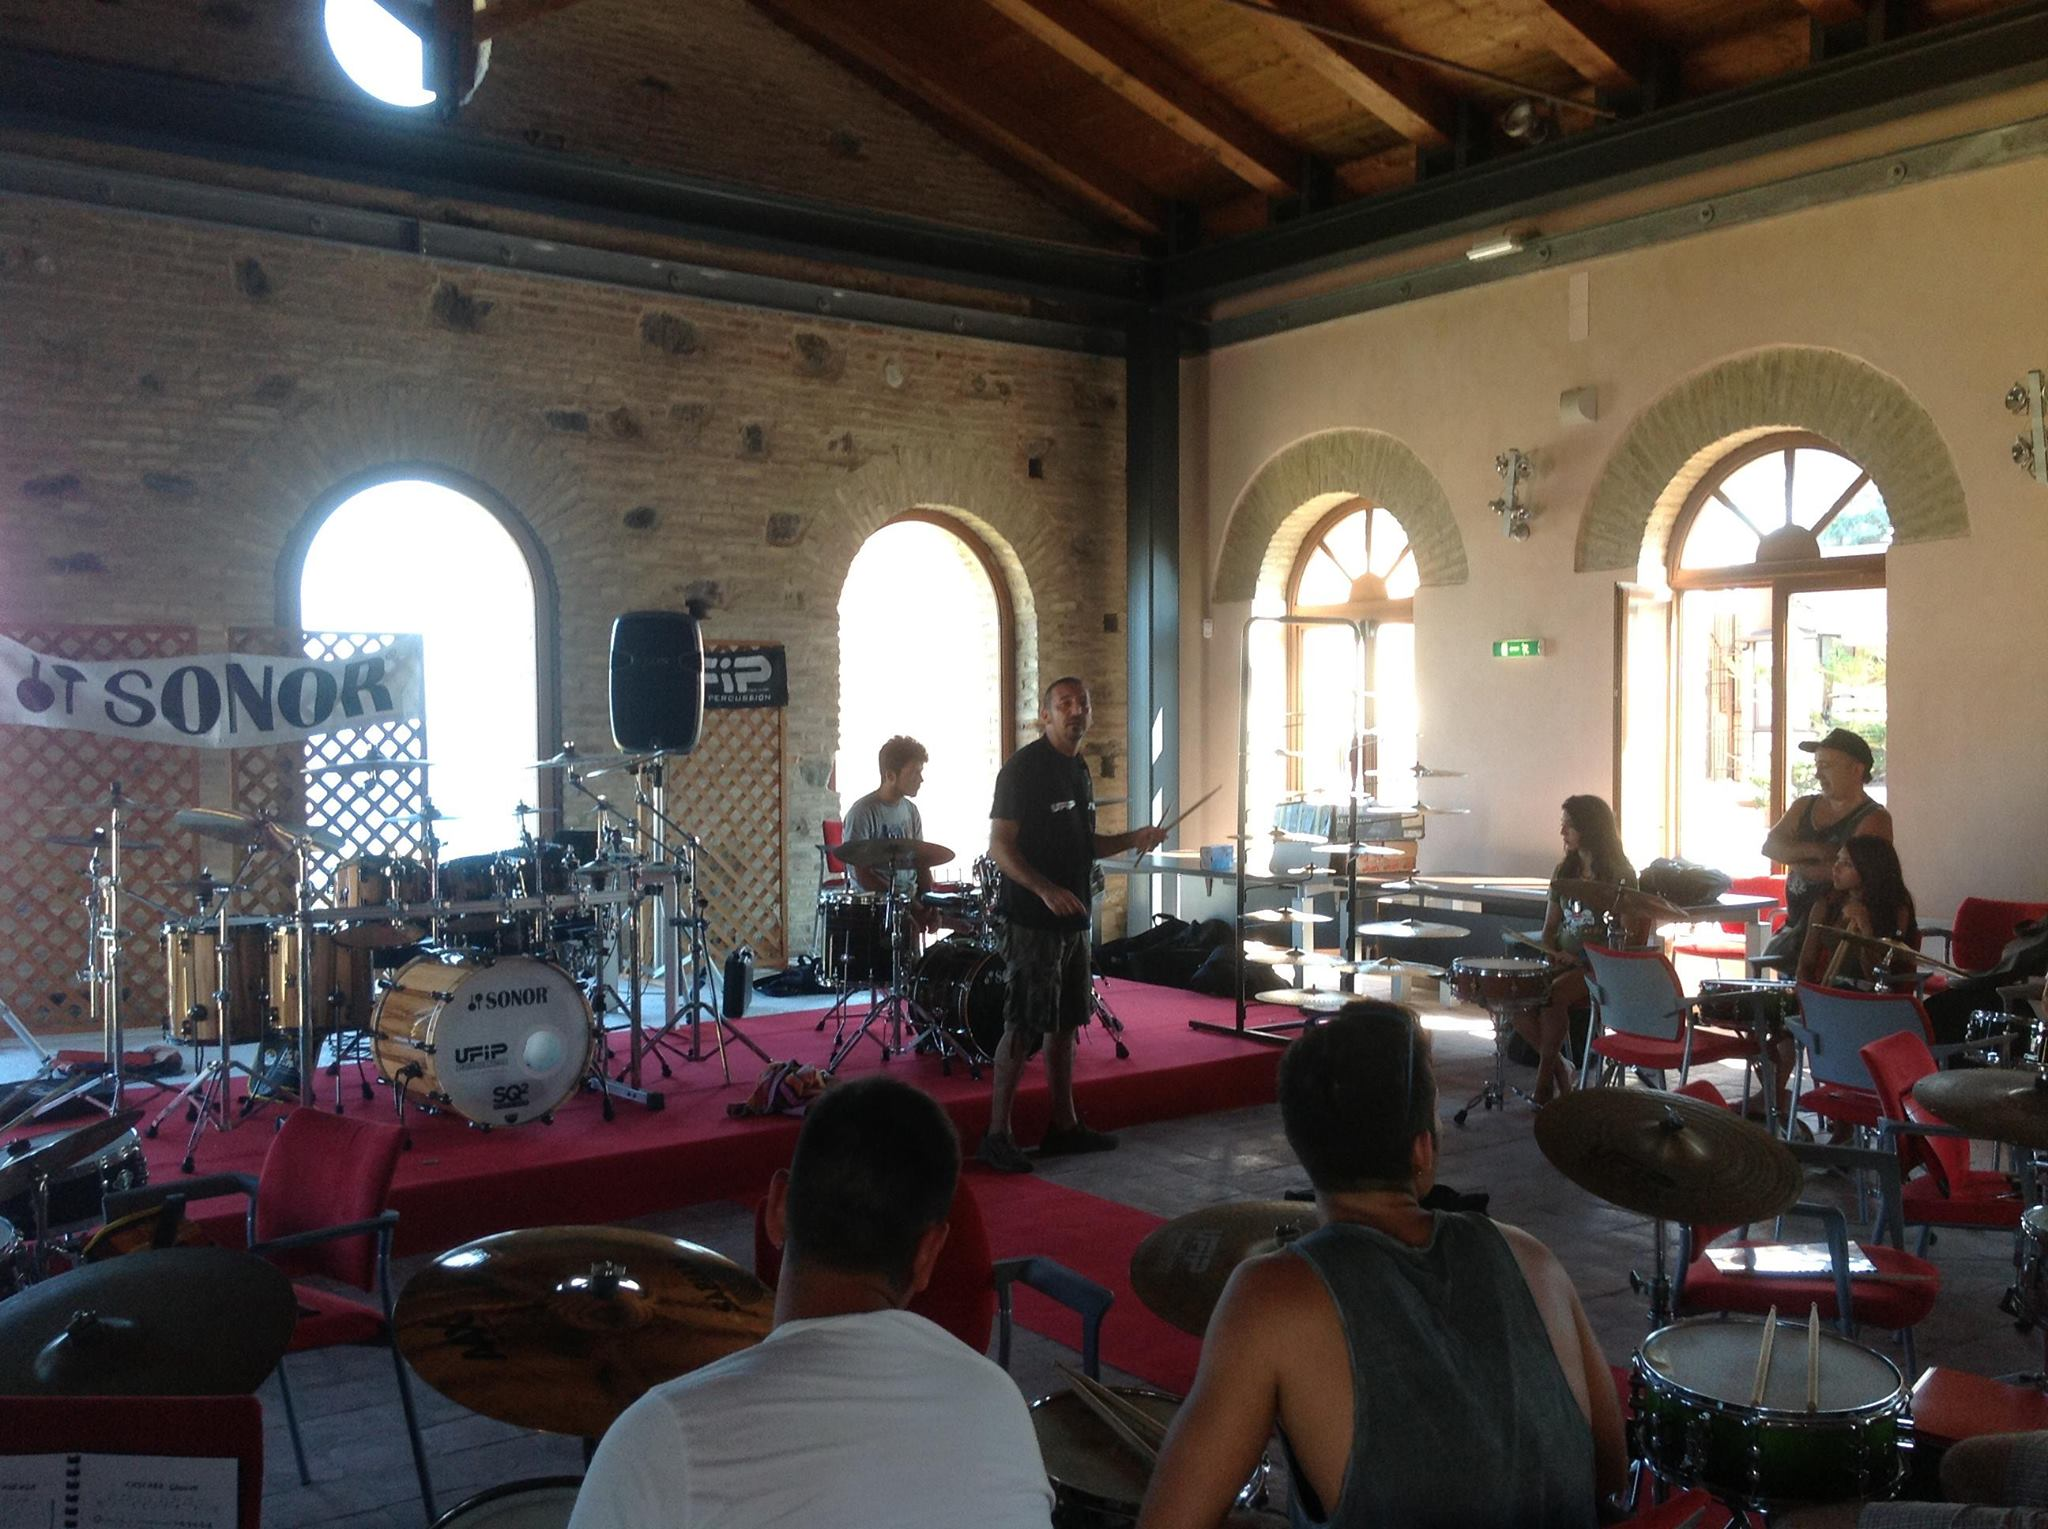 FIERE CONGRESSI MEETING MAGIC SOUND DI DOMINGO CRISAFULLI SICILIA MASTERCLASS BATTERIA PENNISI